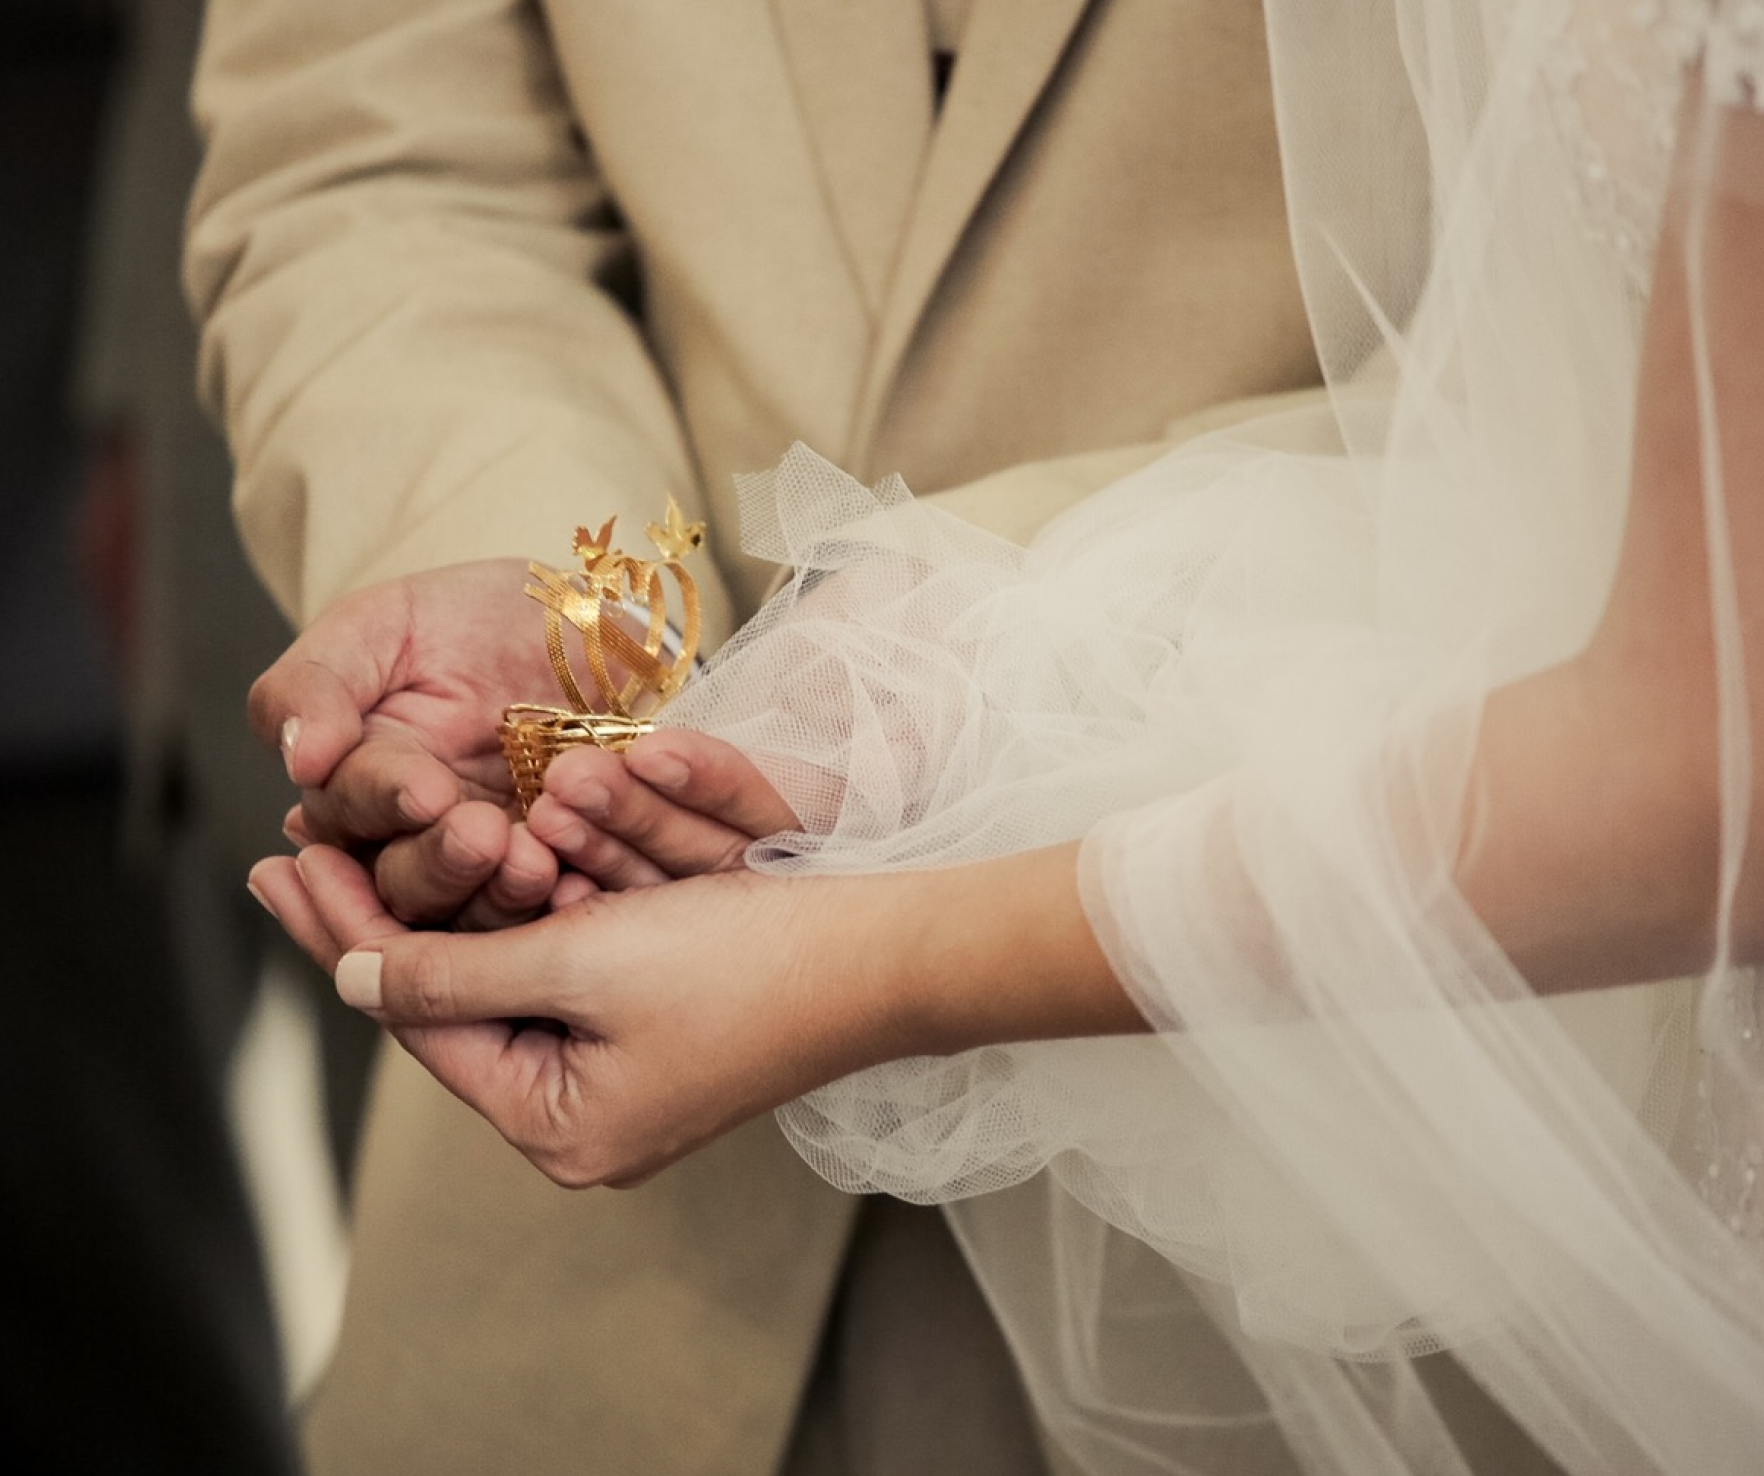 A wedding ceremony where the couple is holding hands